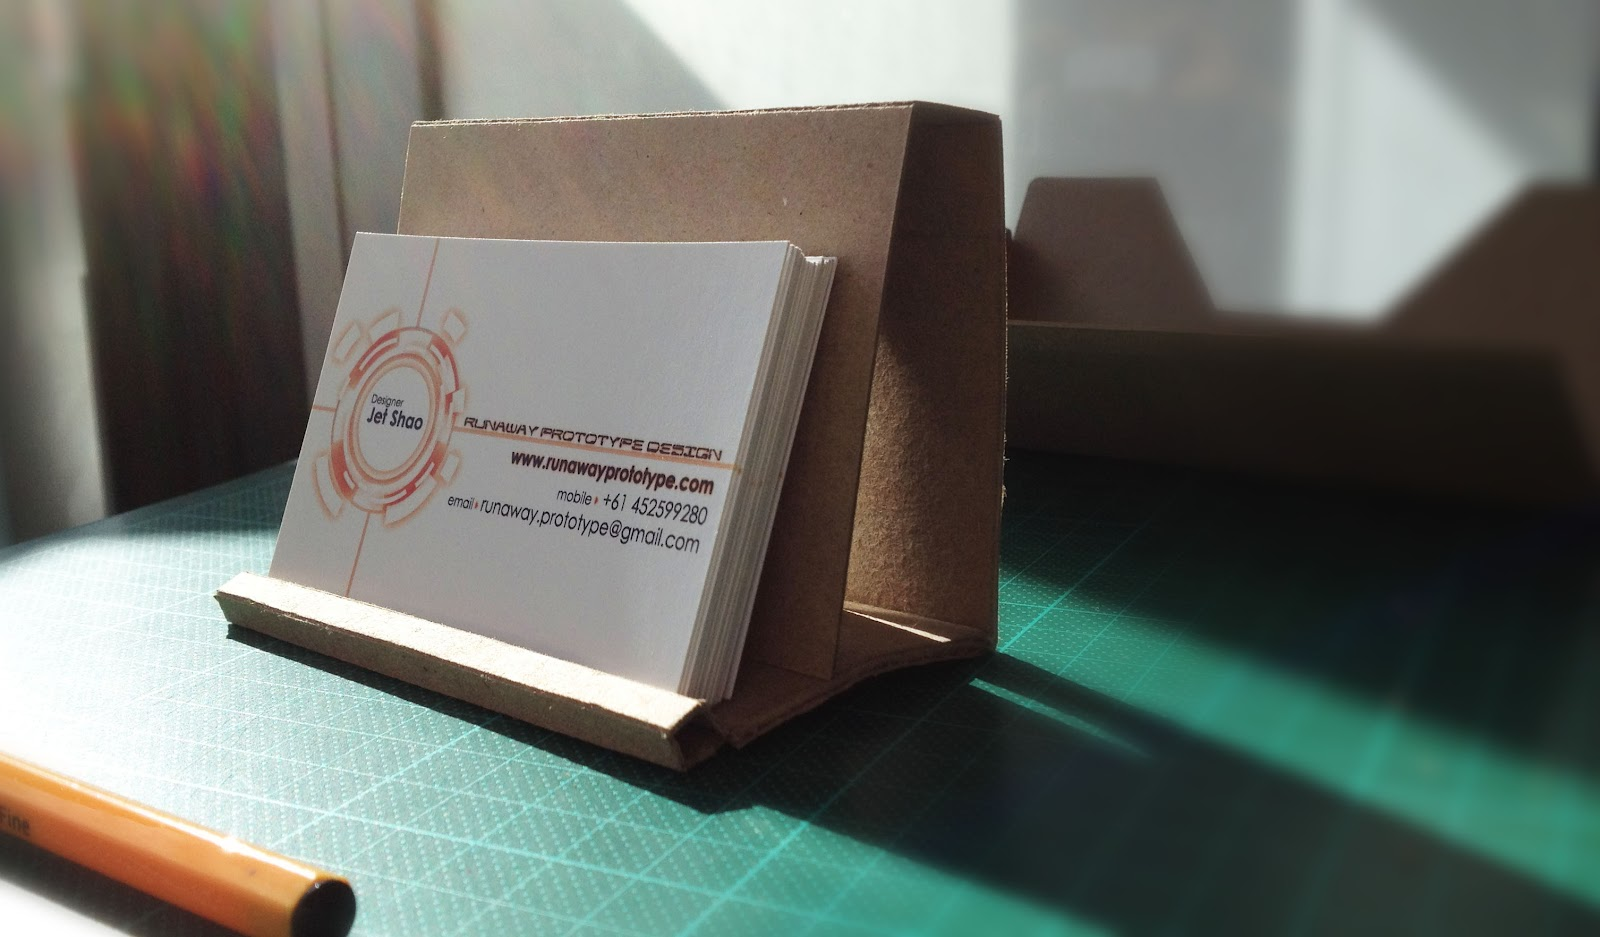 Runaway prototype design cardboard business card holder cardboard business card holder flashek Image collections